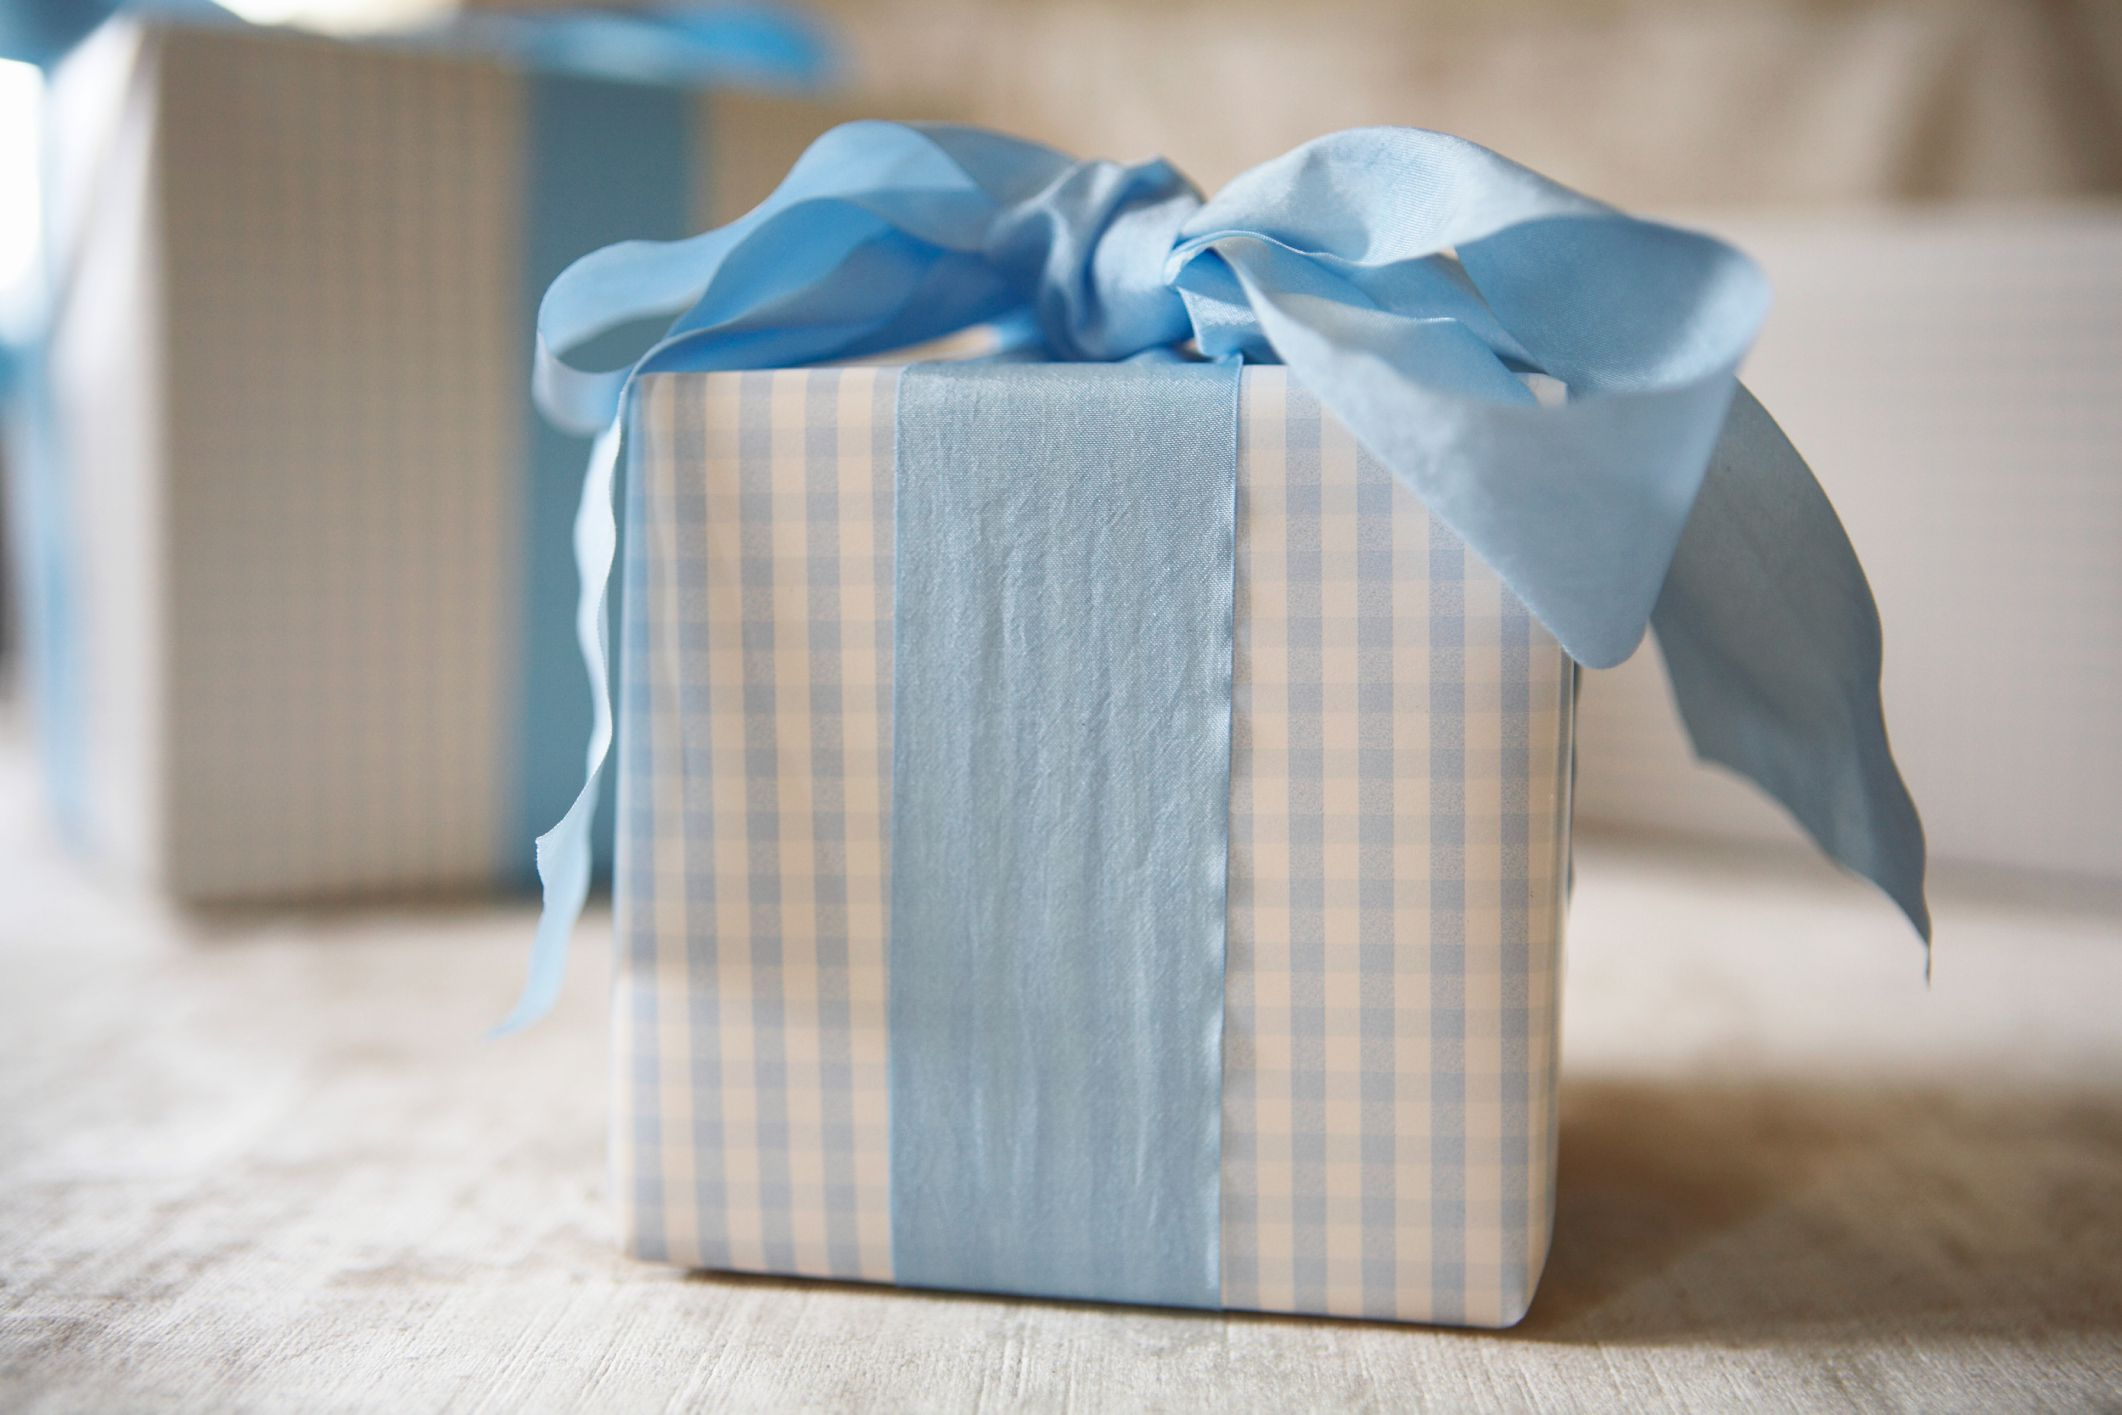 The Best Wedding Gift Ideas For Any Couple